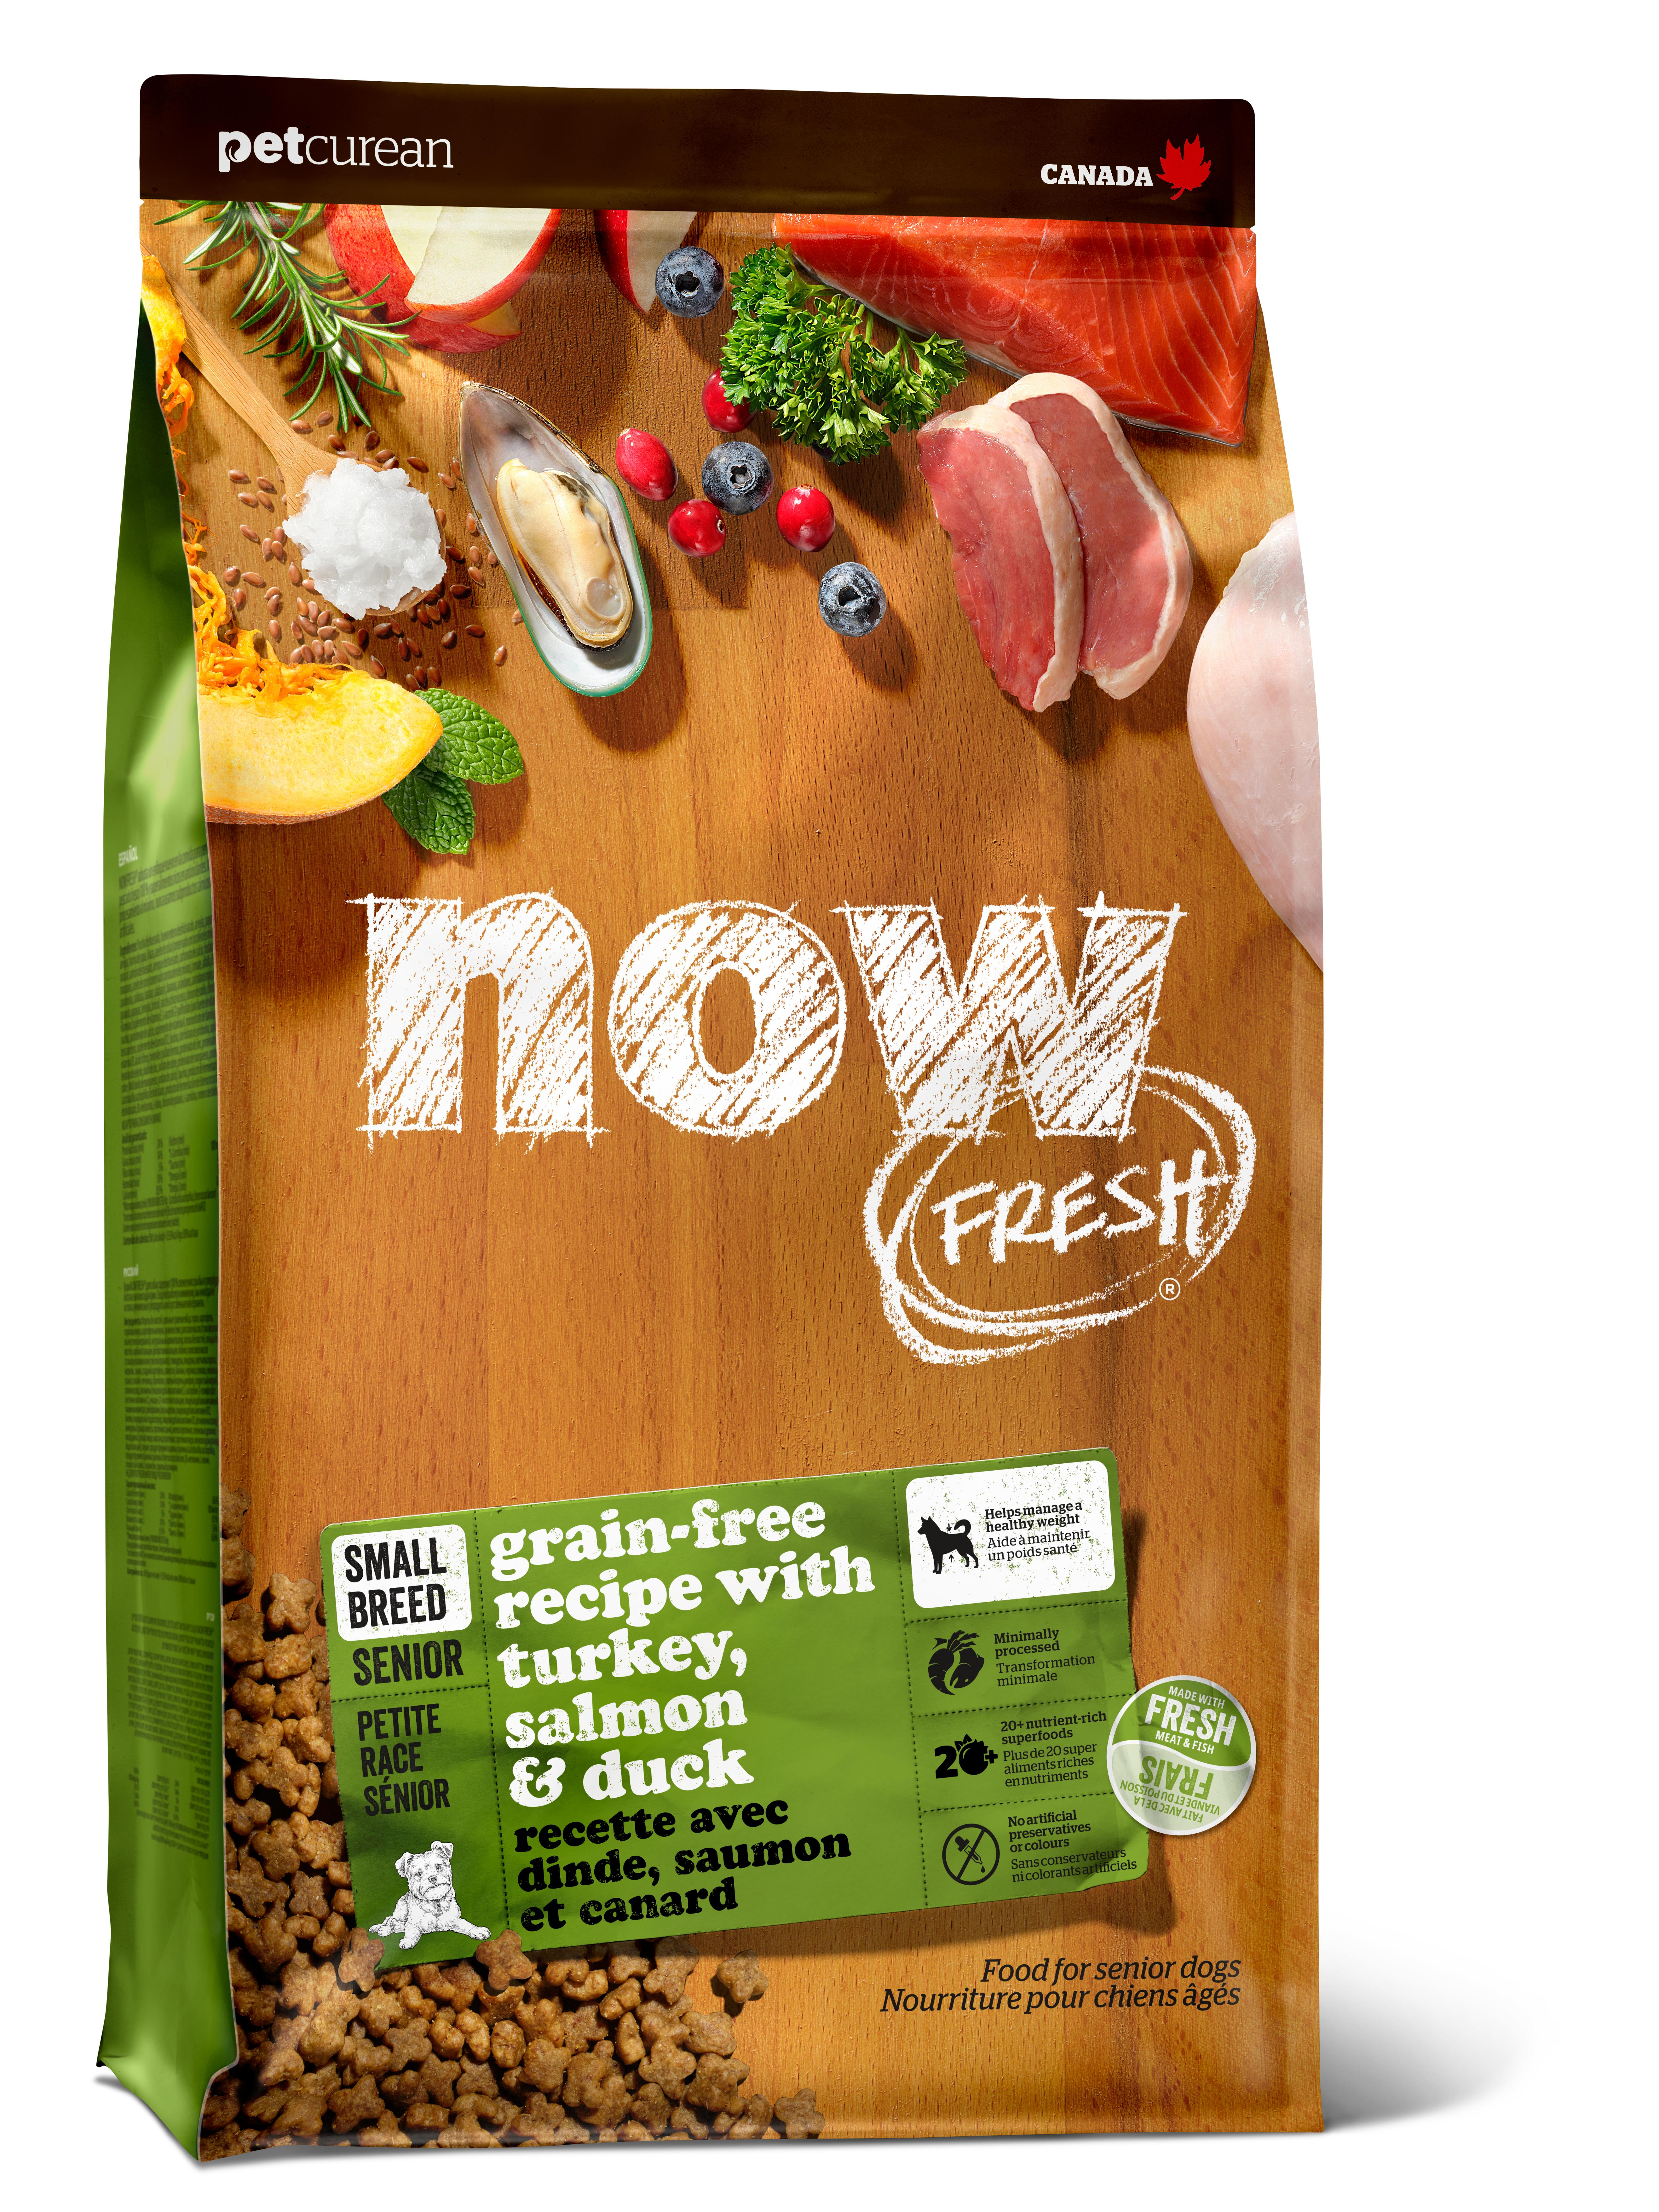 NOW FRESH Small Breed Senior Recipe Grain-Free Dry Dog Food Image